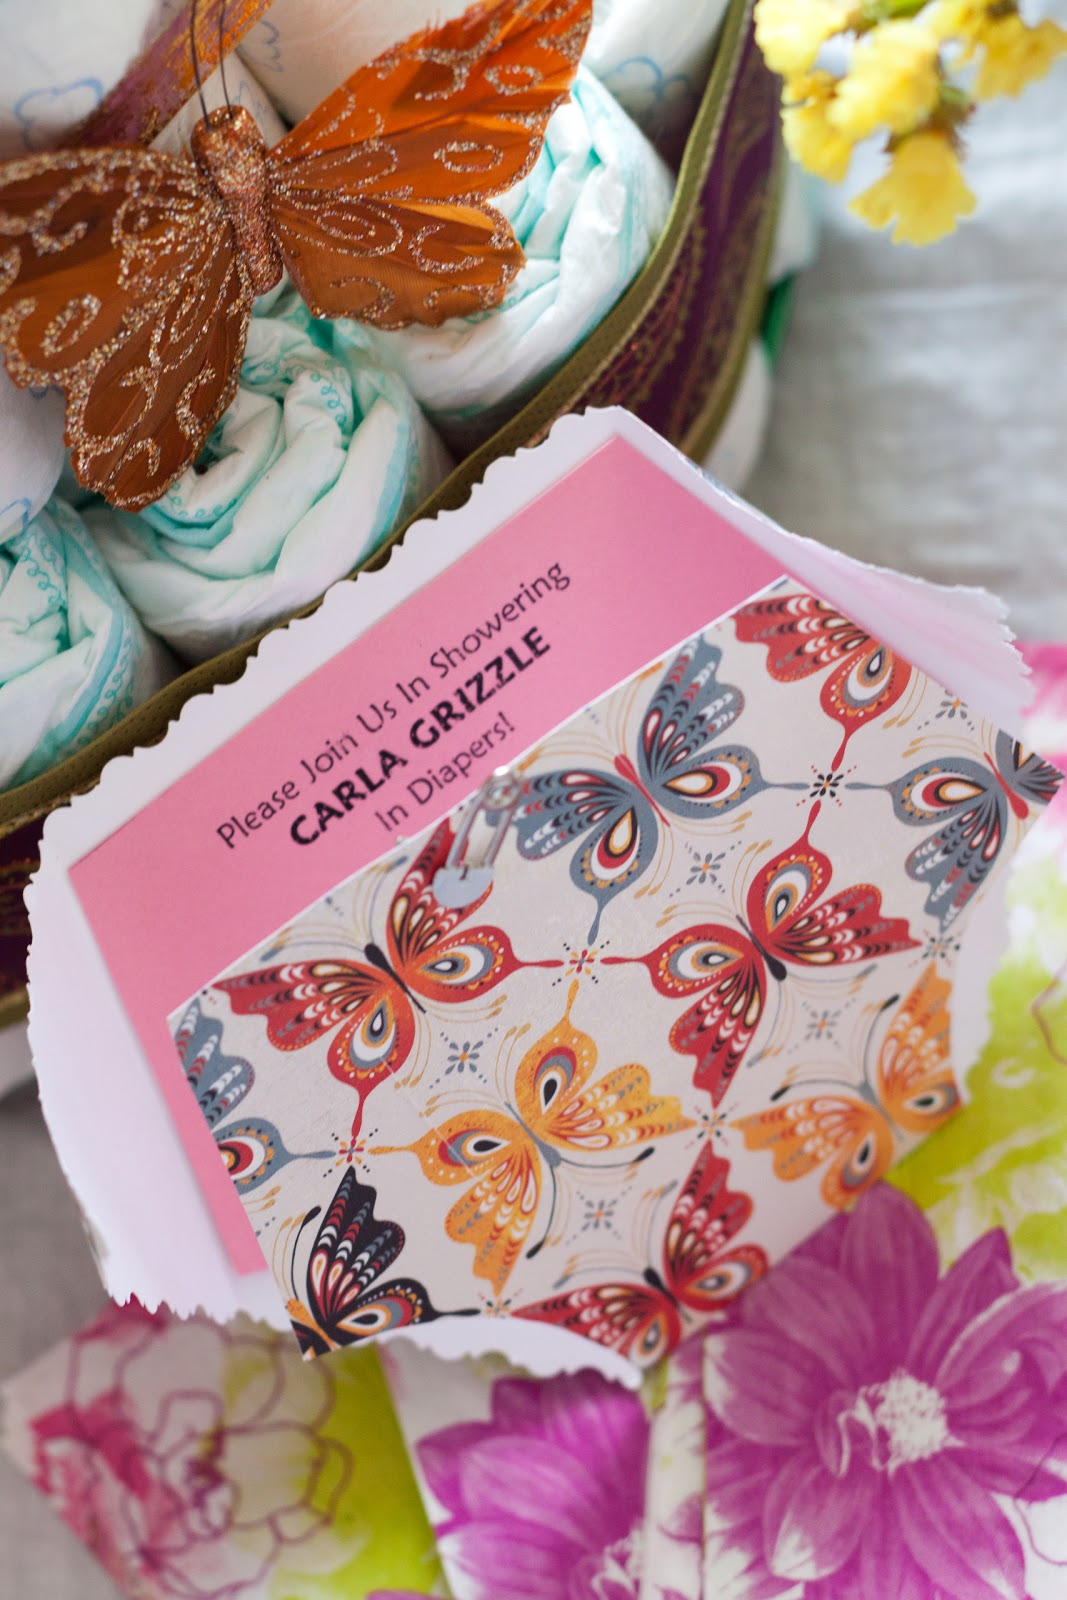 Measurements of Merriment: Enchanting Butterfly Baby Shower